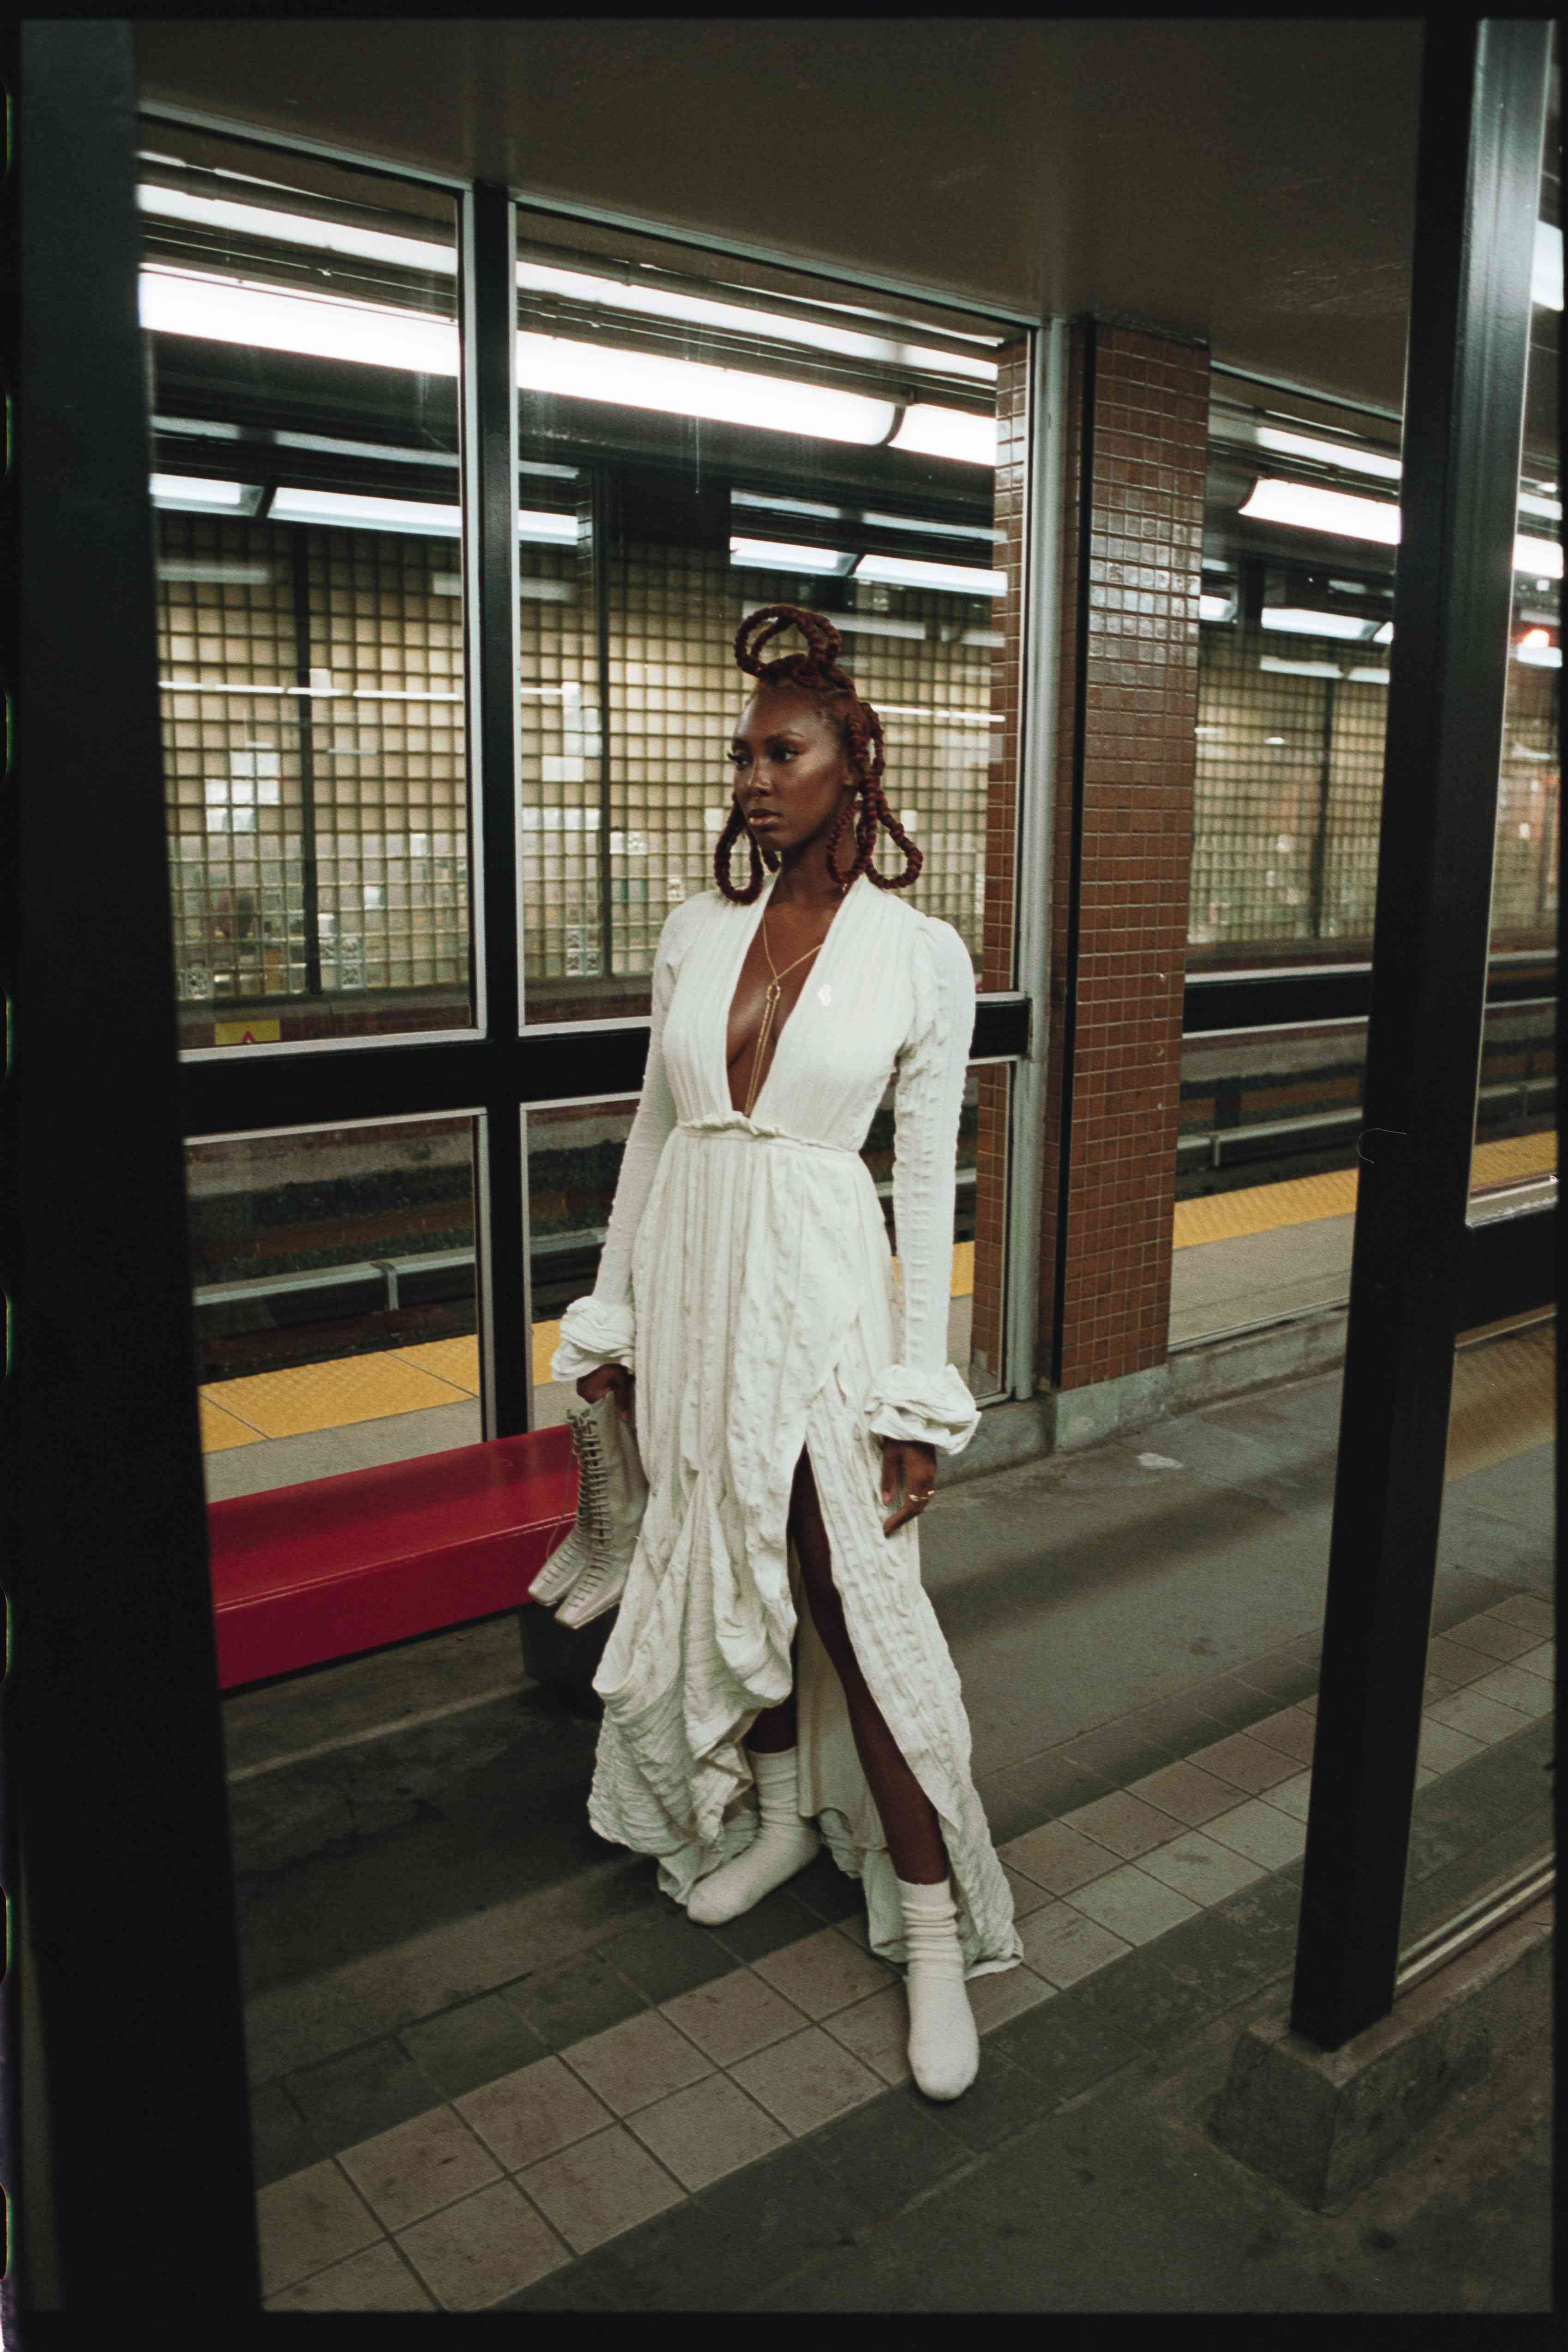 Woman standing in subway station wearing wedding gown.